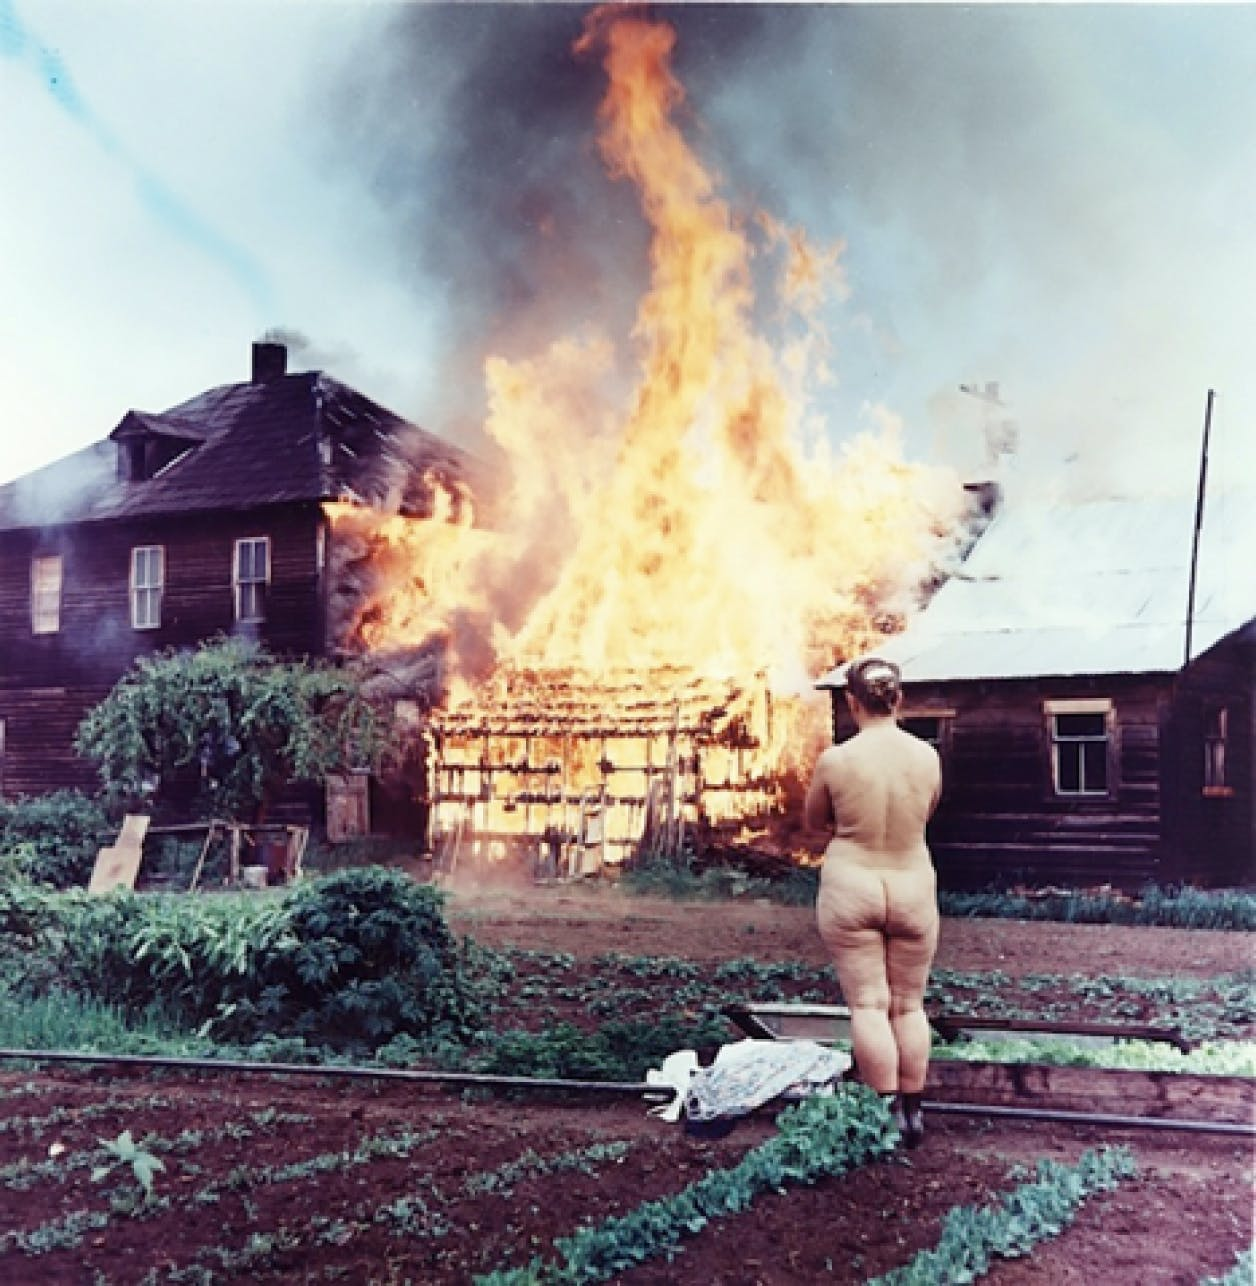 In June 1962, a Freedomite woman torches her home as a protest against materialism. The Vancouver Sun.